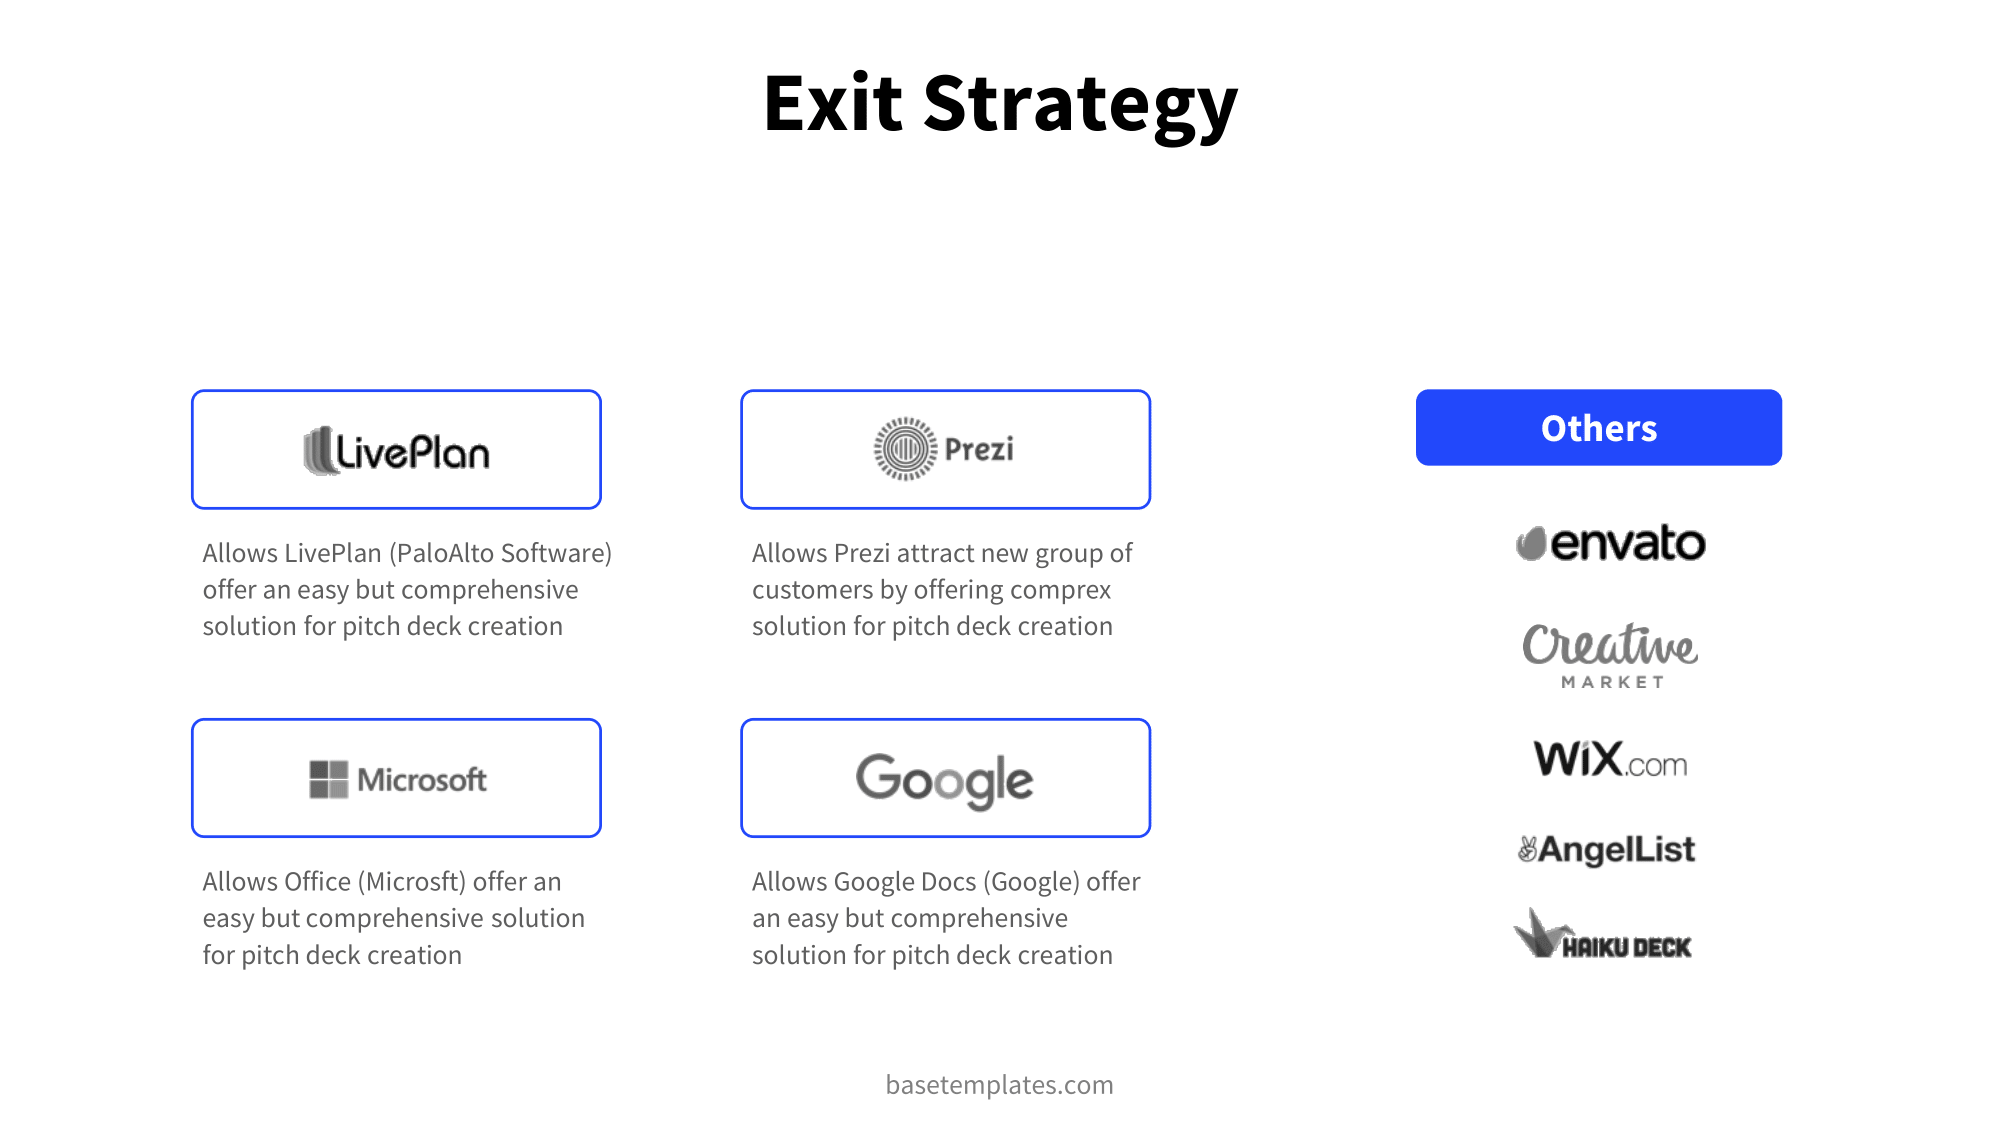 Exit strategy slide in blue and clean design